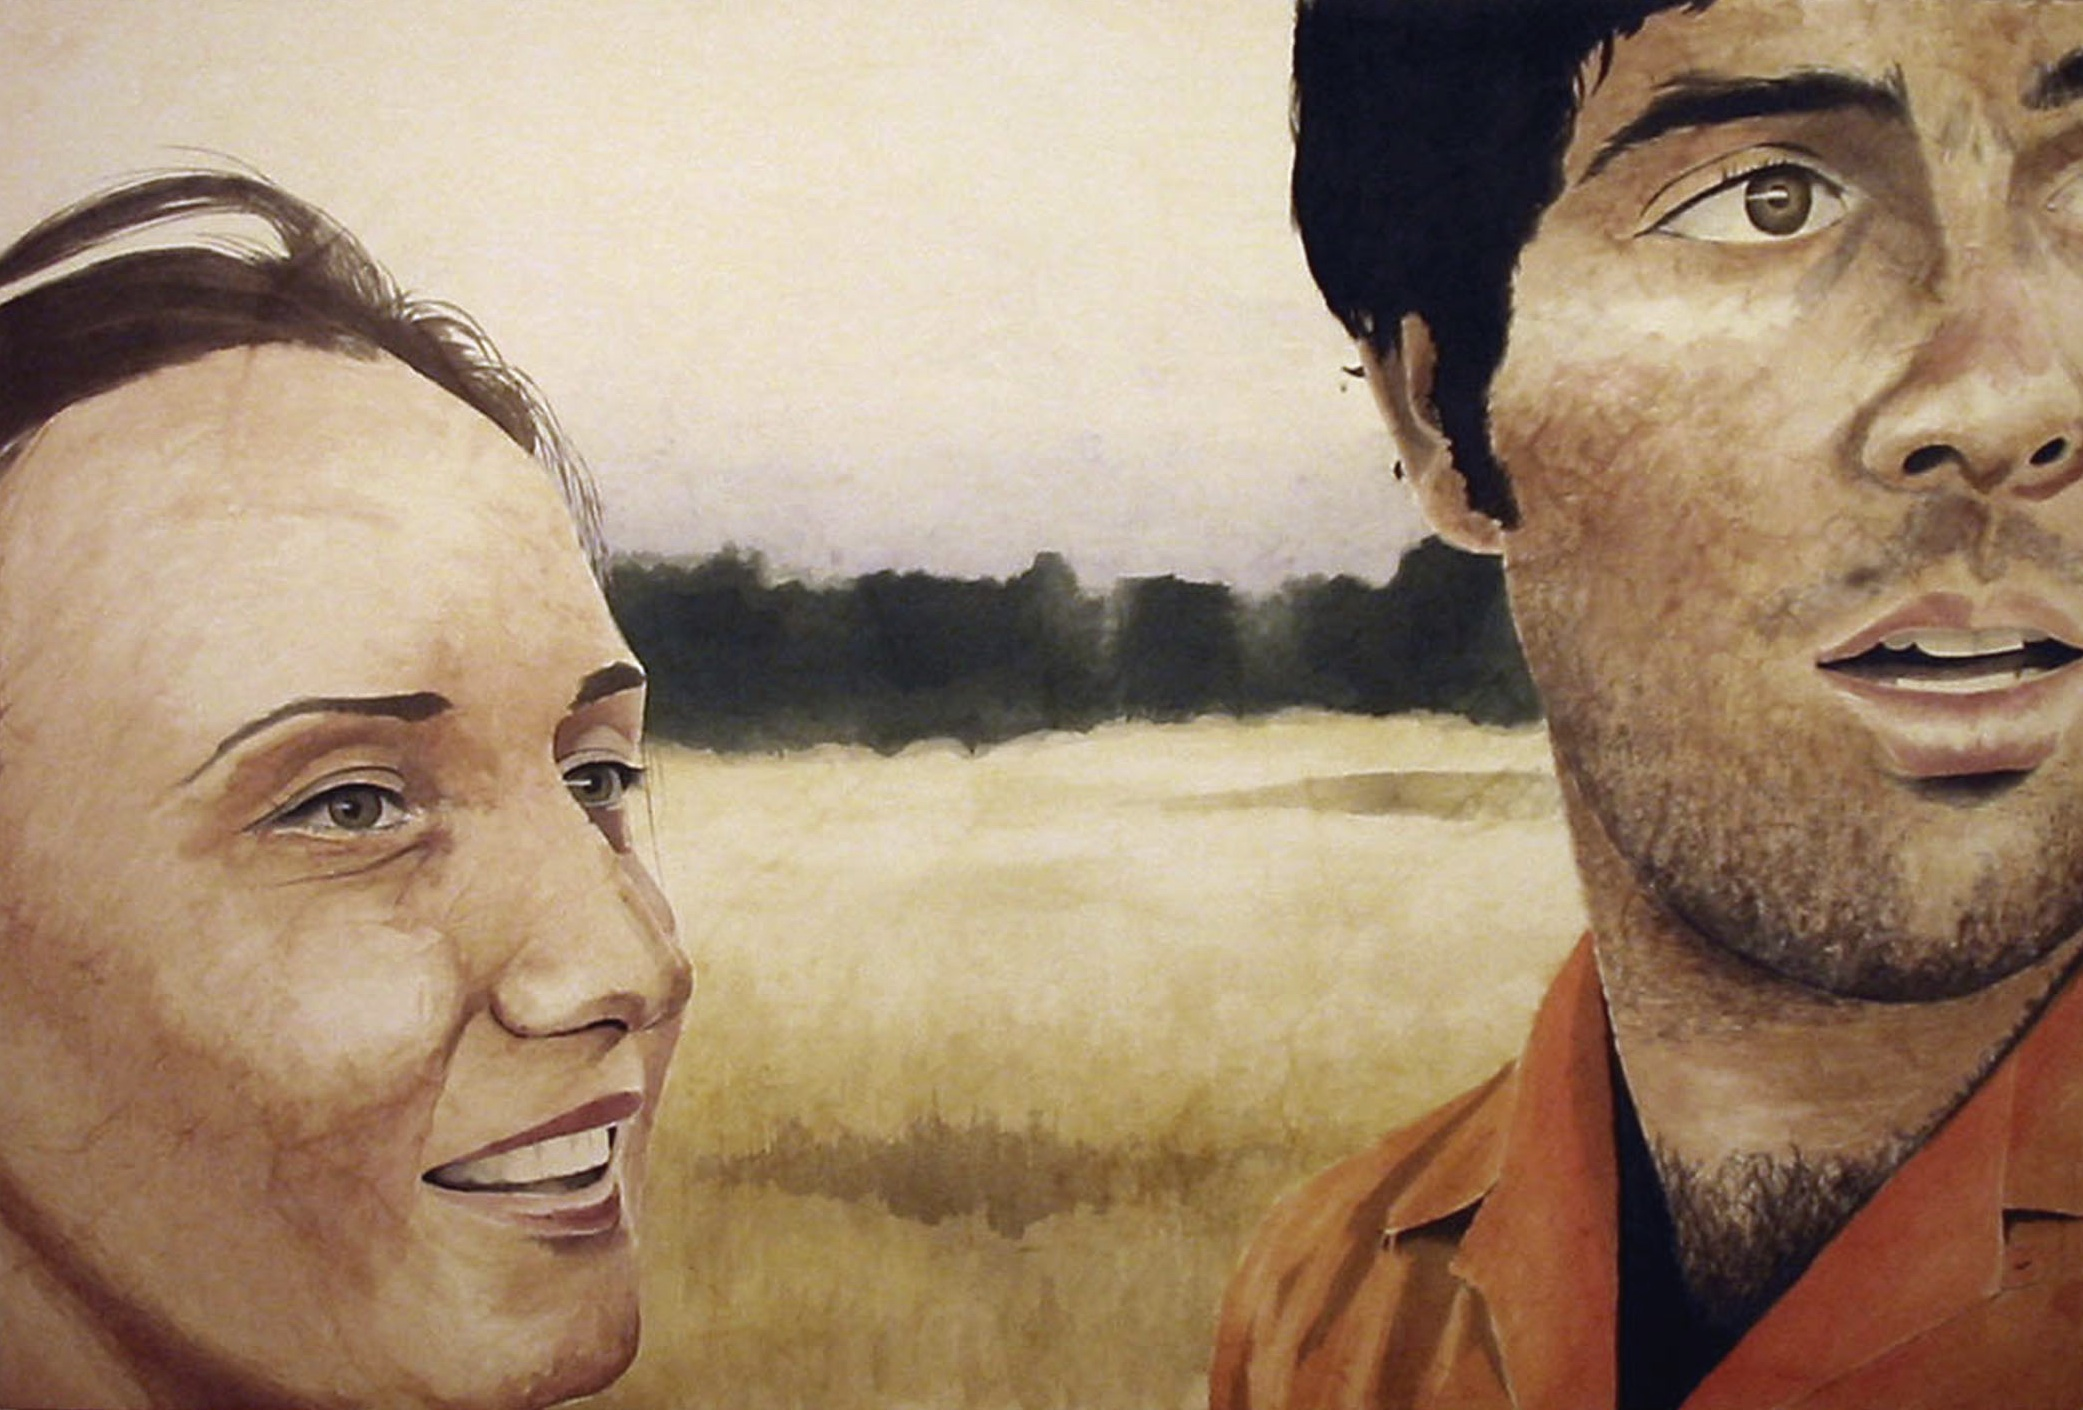 Arran and Ramona, 2006, acrylic on canvas, 48 x 72 in.